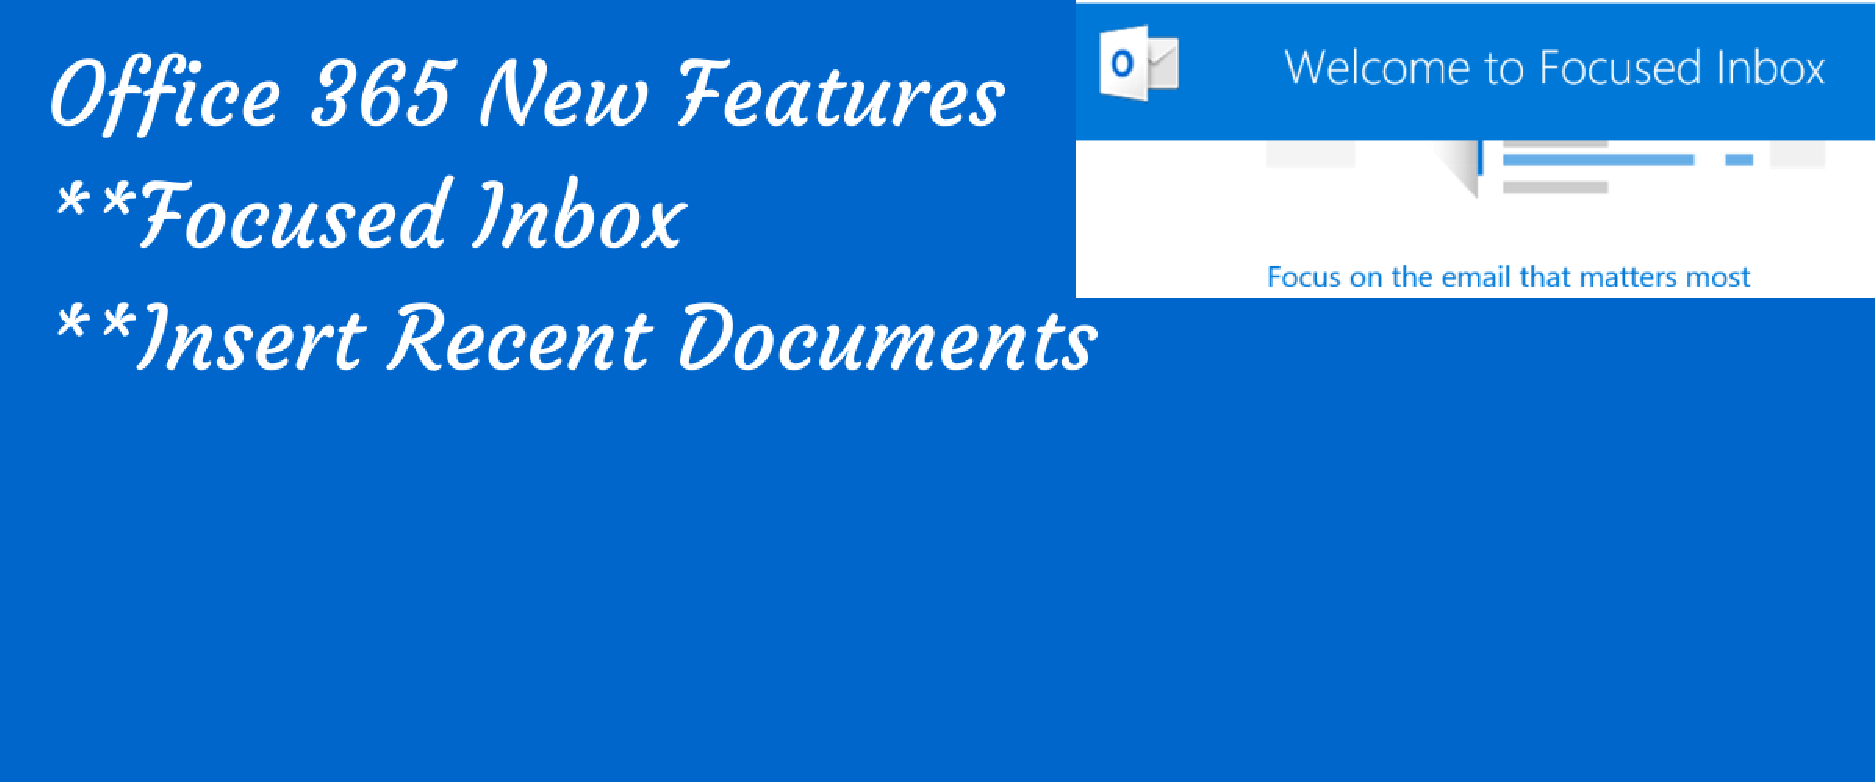 O365 Focused Inbox and Insert Recent Images into Word, Excel and PowerPoint